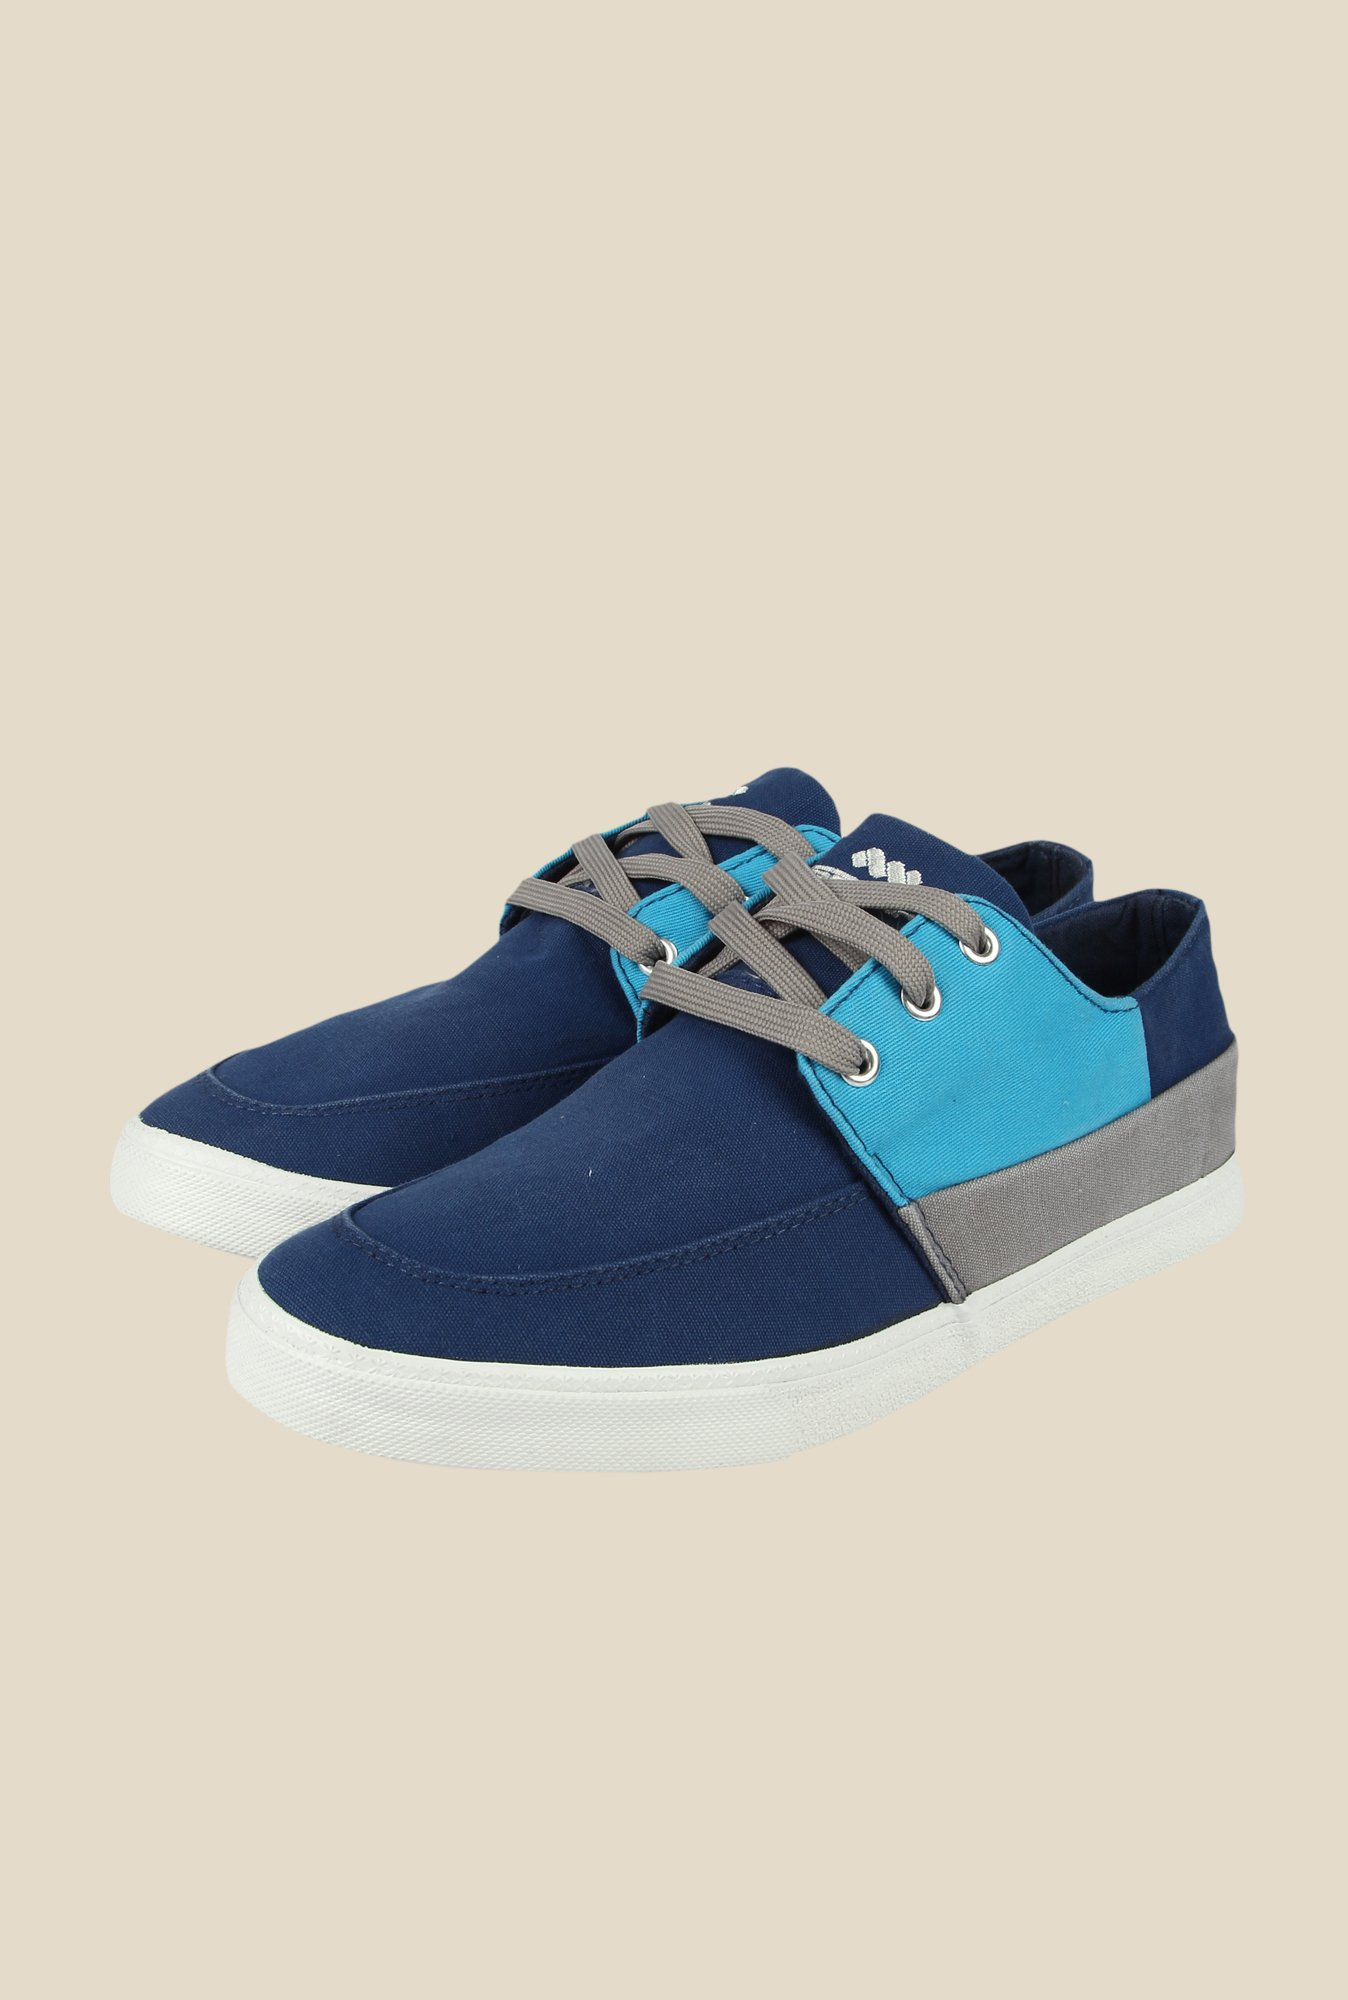 Spunk Patina Navy & Blue Casual Shoes